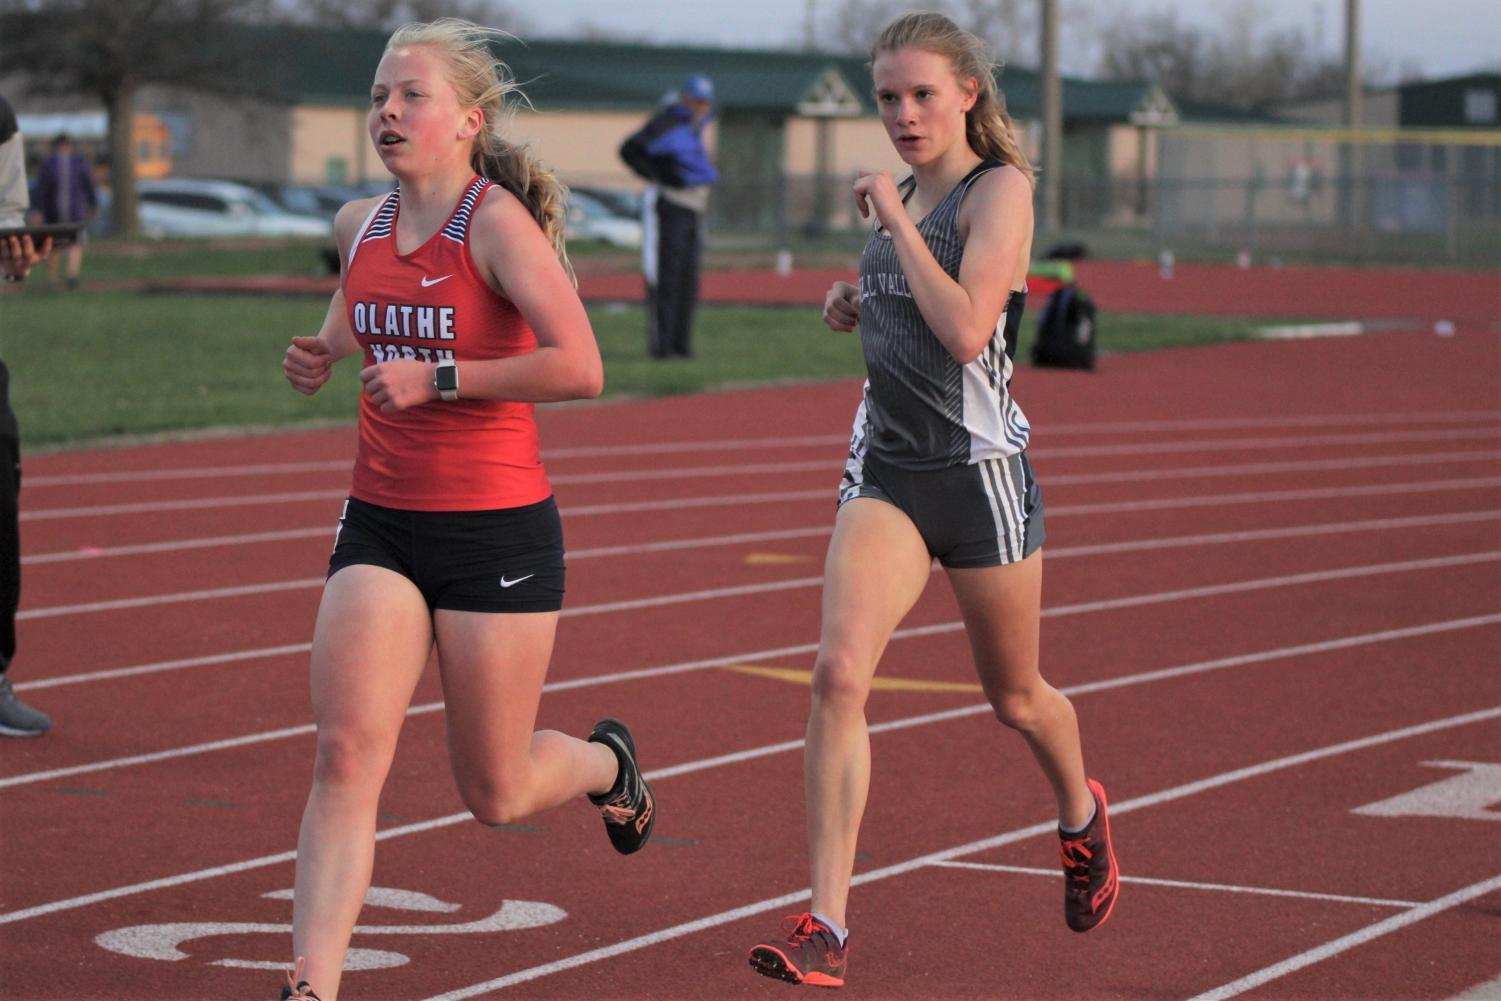 Catching+up+to+her+competitor%2C+freshman+Katie+Schwartzkopf+competes+in+the+3200+meter+race.